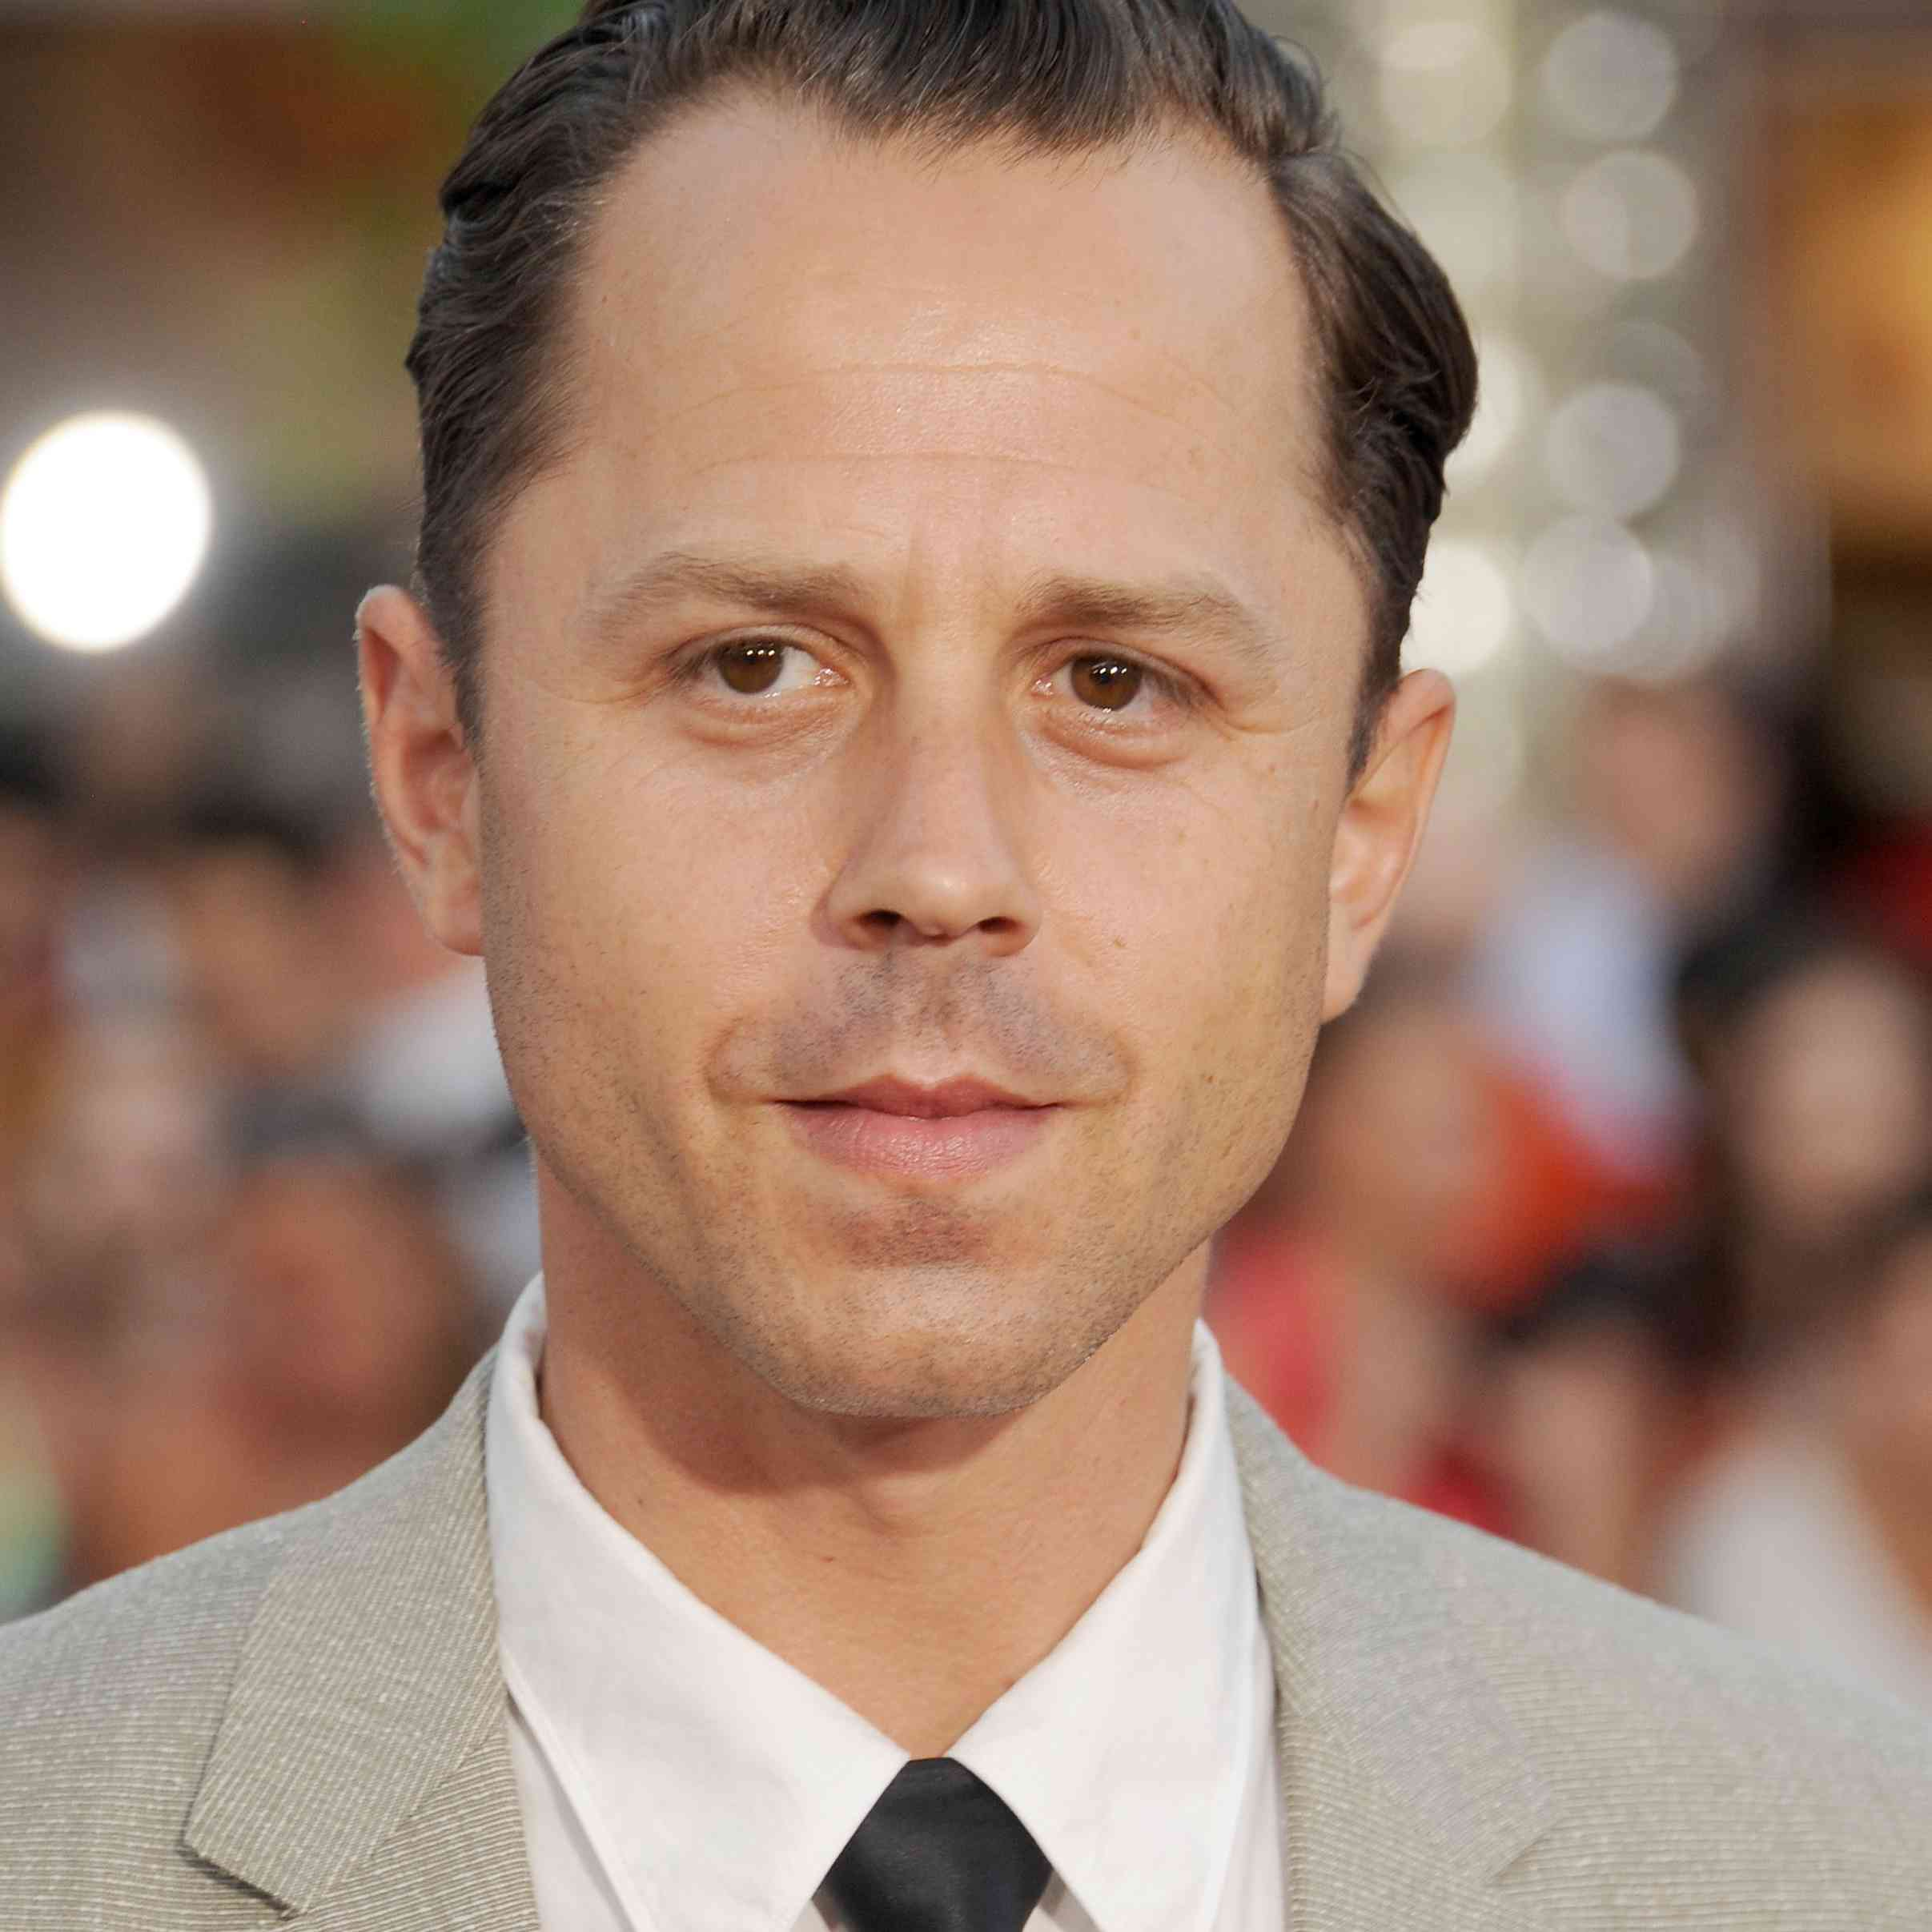 Portrait of Giovanni Ribisi in suit against blurry background.